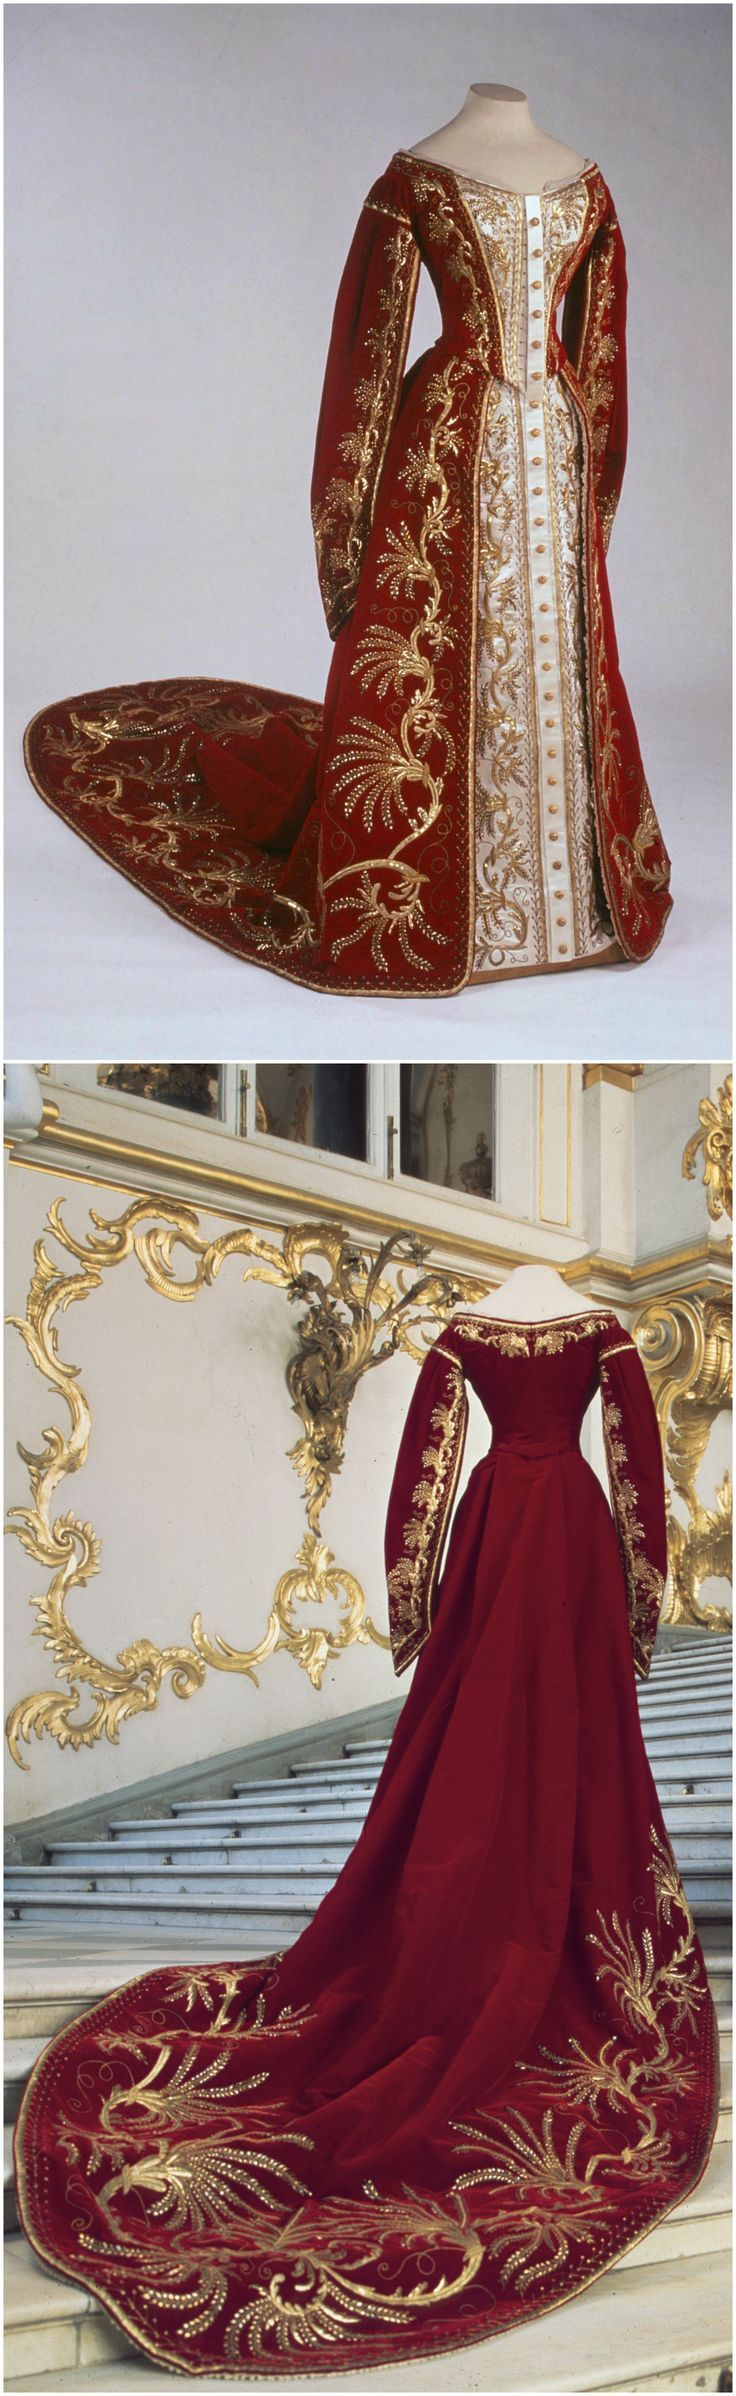 Ceremonial court dress of a maid of honor to the Empress of Russia,